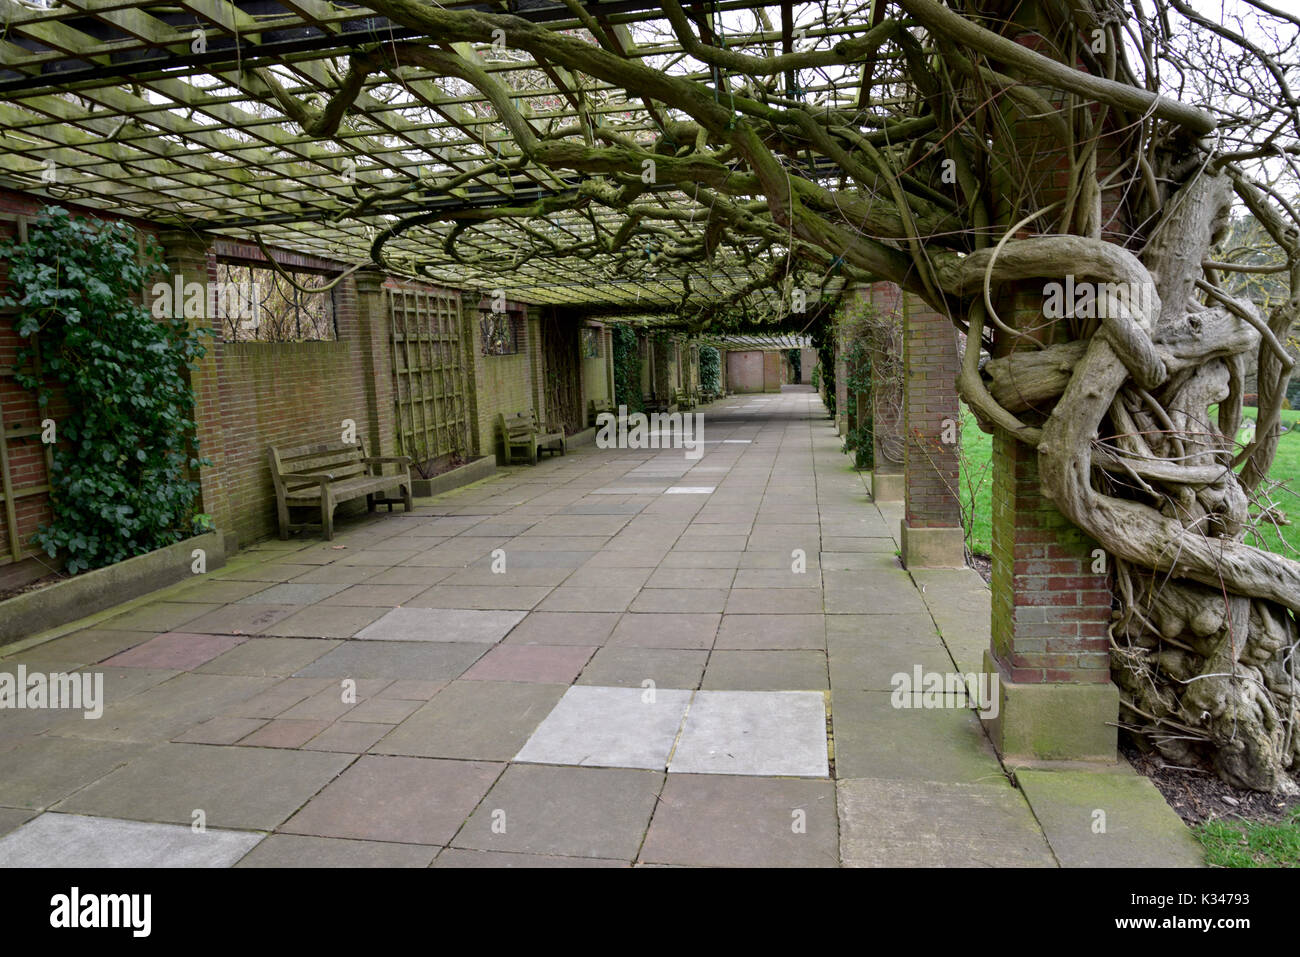 Harrogate, a spar town in North Yorkshire. - Stock Image